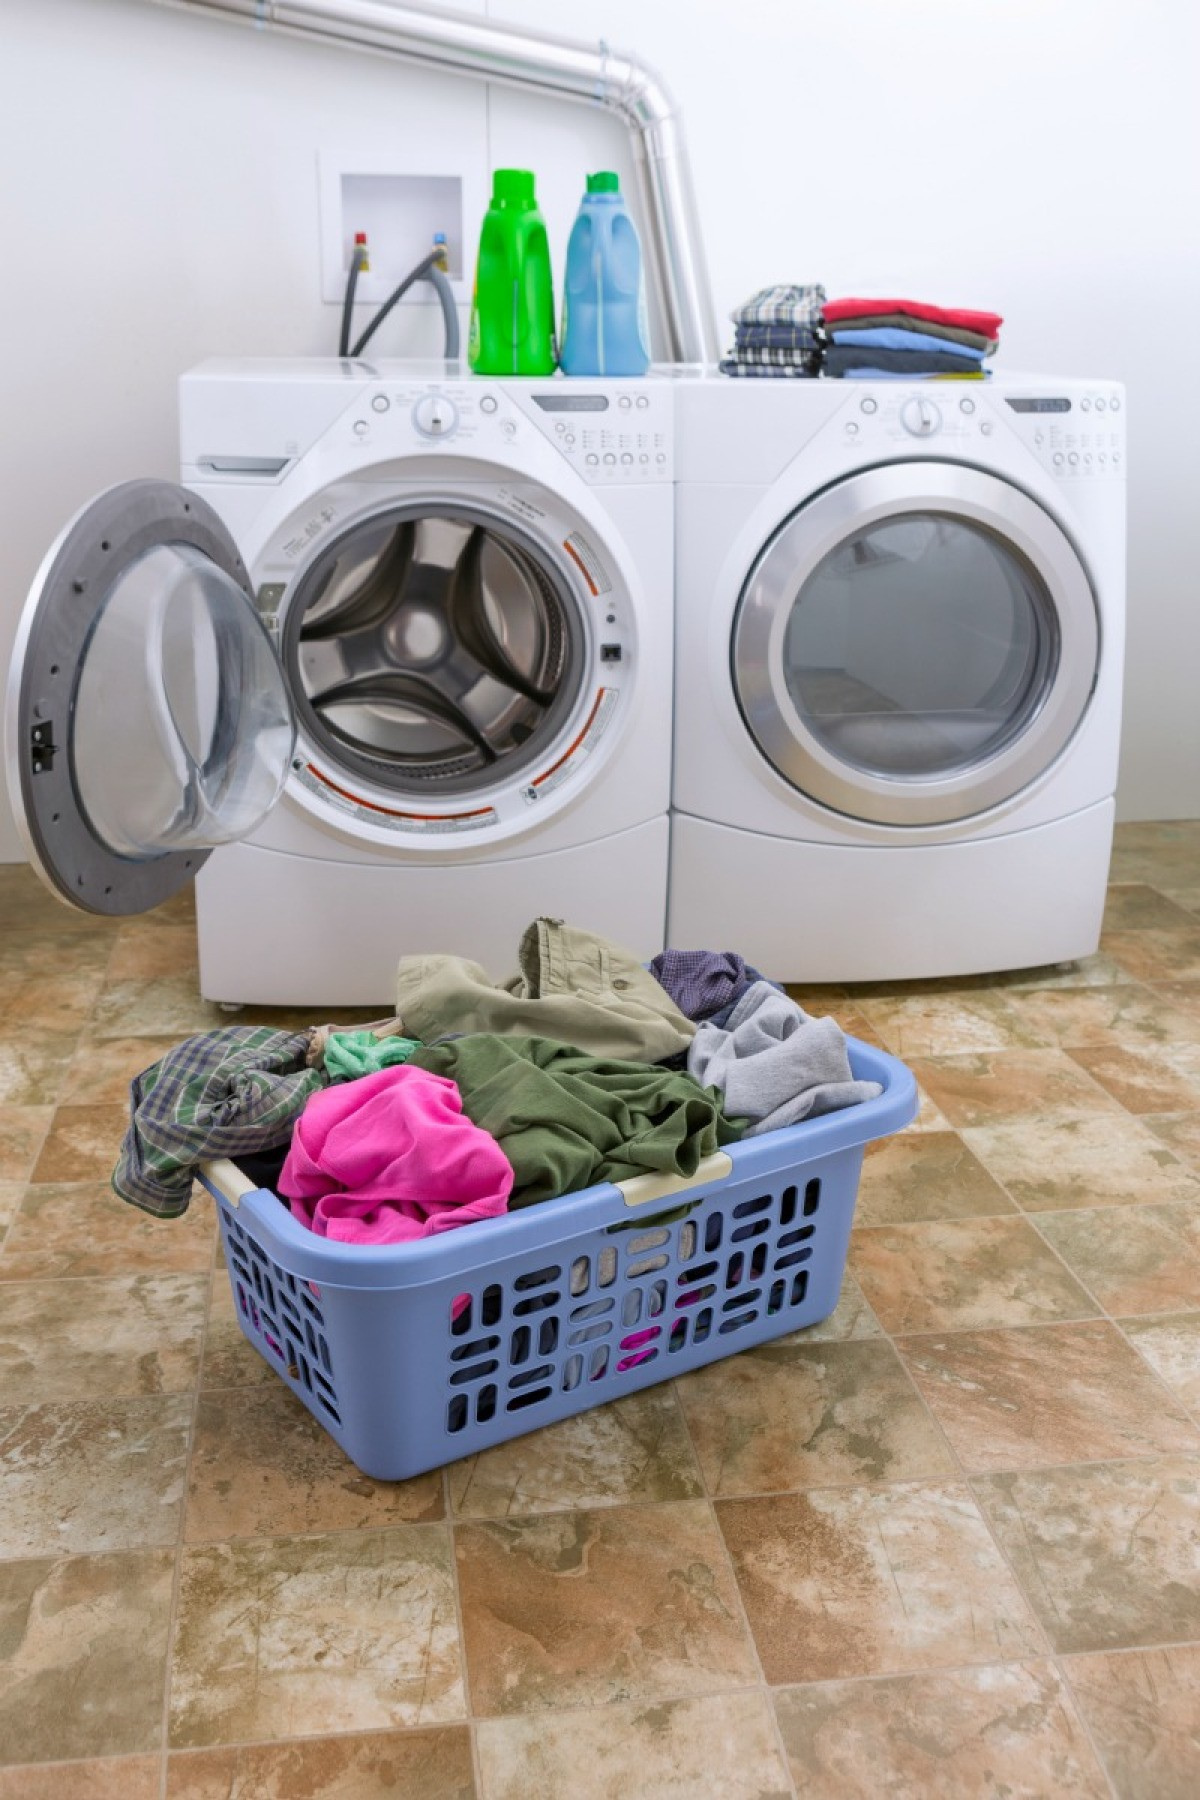 New Washer And Dryer Washer And Dryer Reviews Thriftyfun